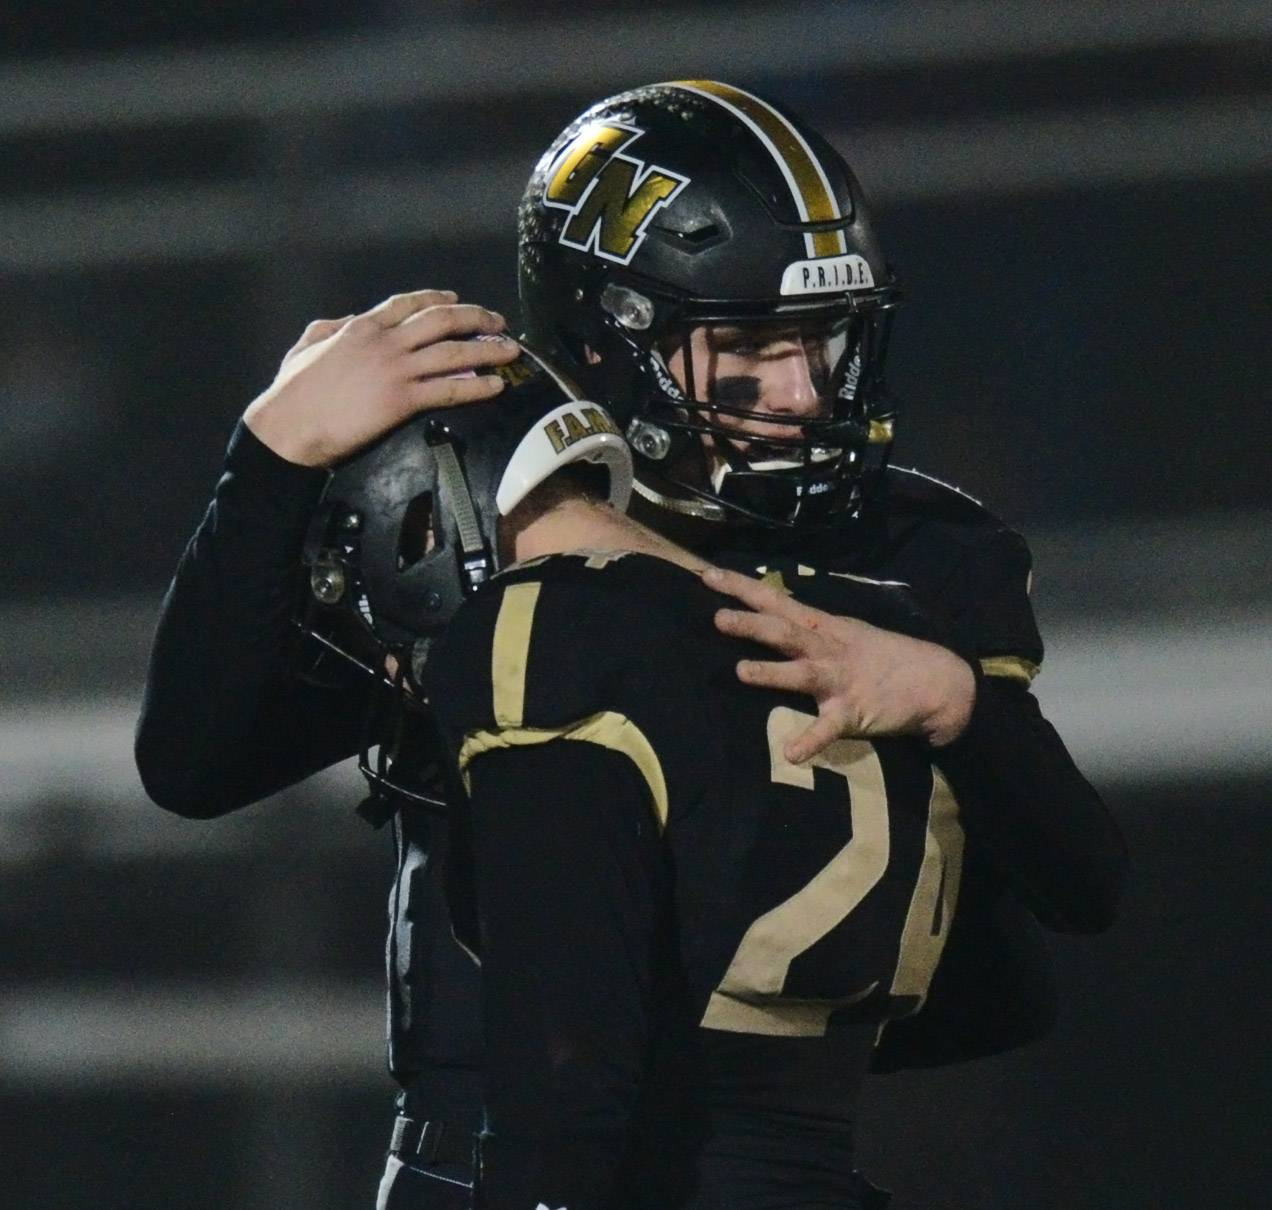 Images: Grayslake North vs. Belvidere North football